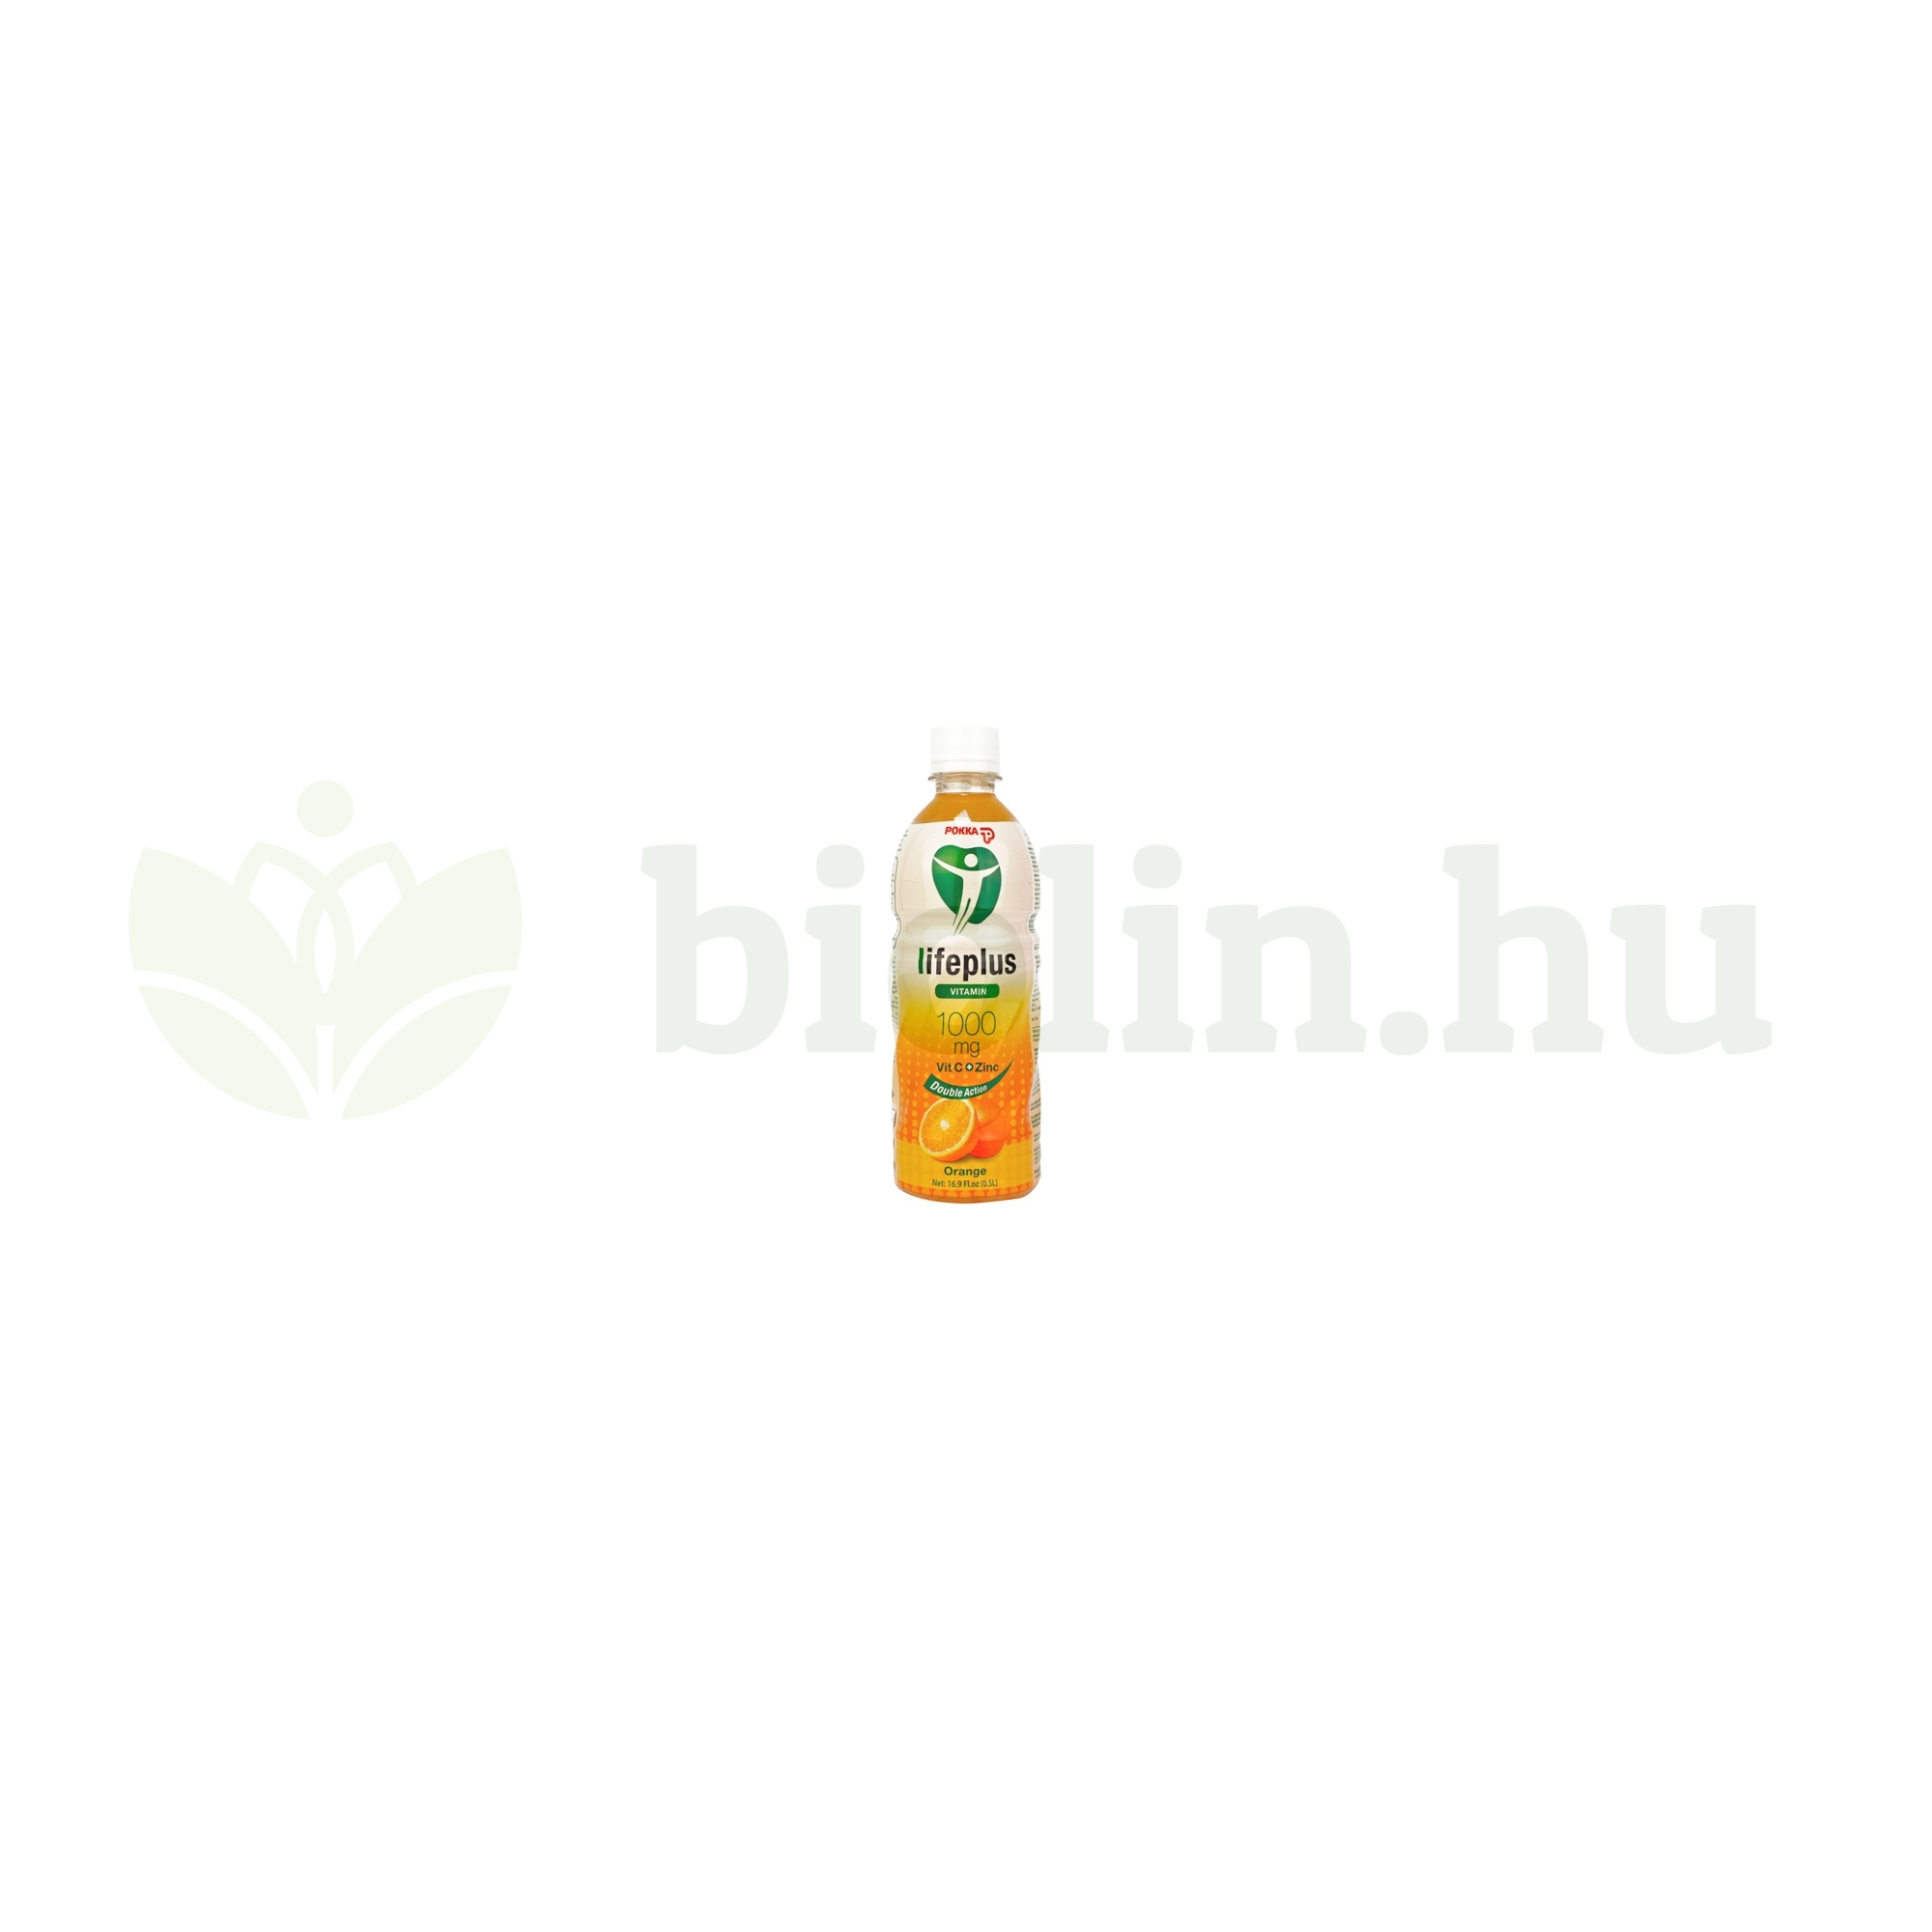 POKKA LIFEPLUS NARANCS 1000MG C-VITAMIN + CINK 500ML POKKA LIFEPLUS NARANCS 1000MG C-VITAMIN + CINK 500ML